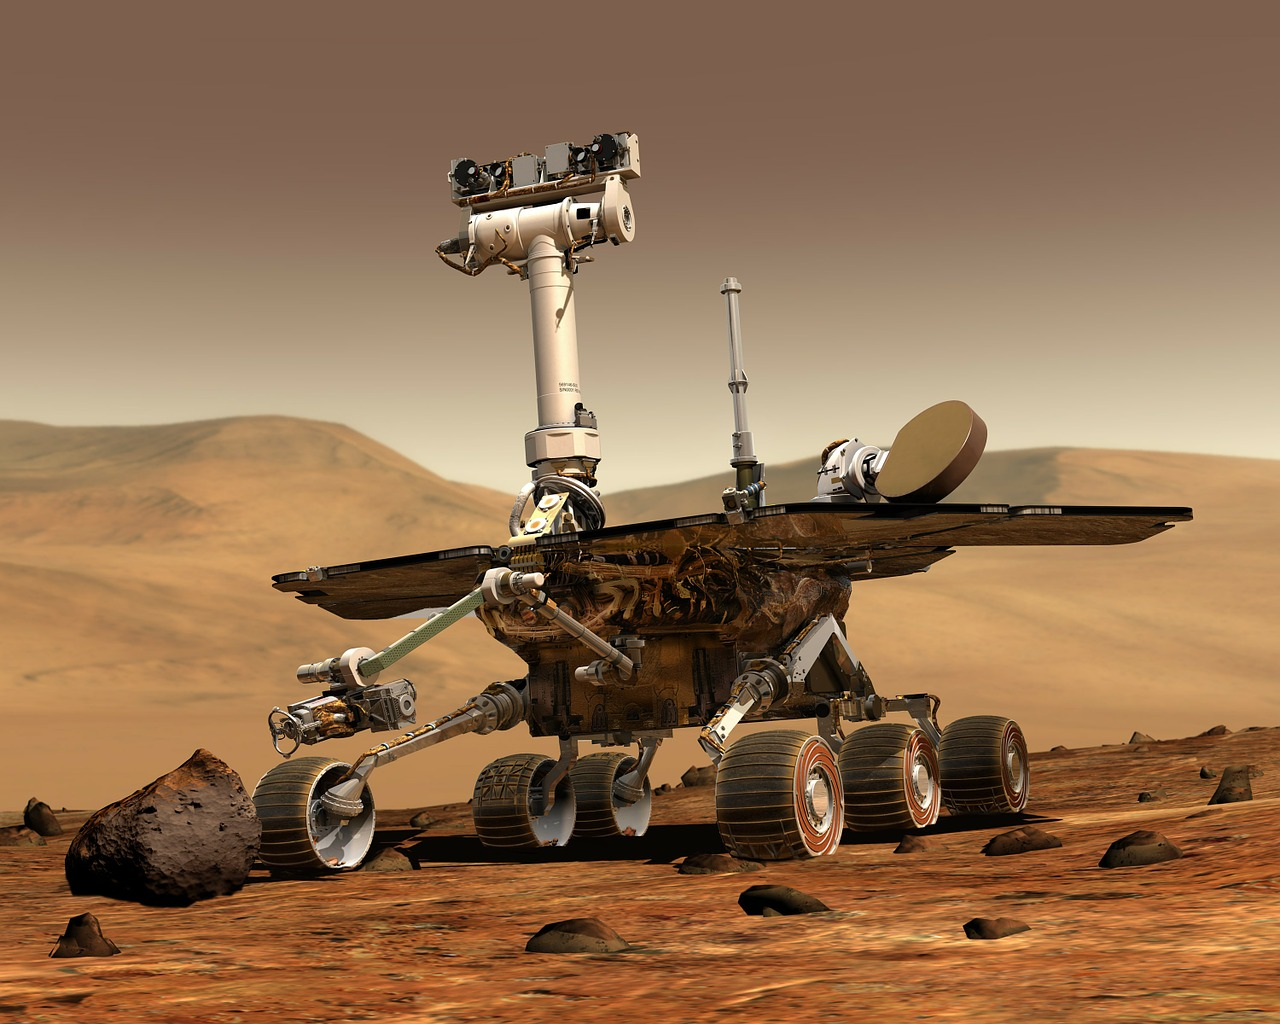 No longer responding, NASA puts an end to the task of the opportunity on Mars